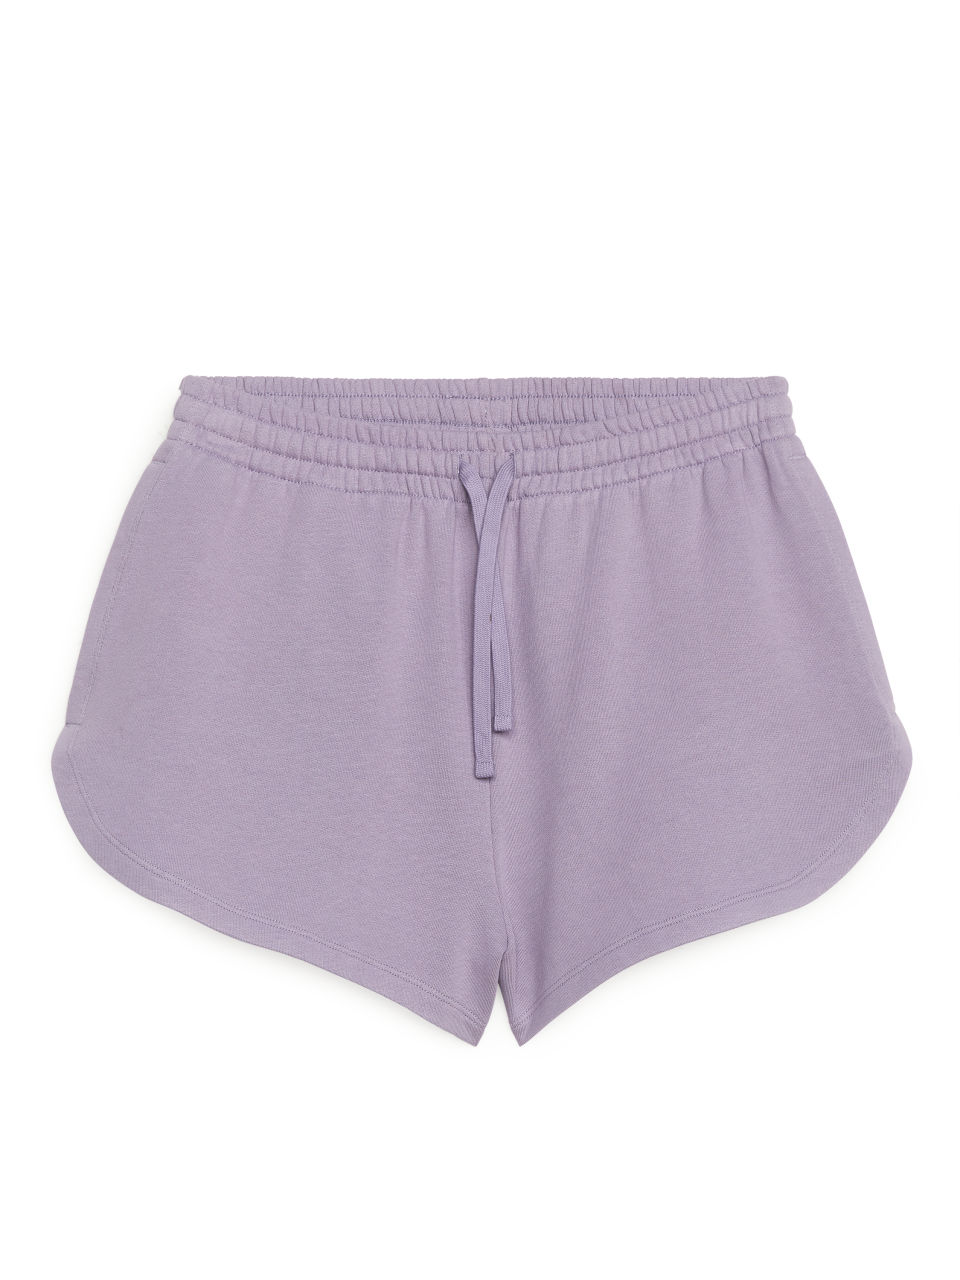 French Terry Shorts - Purple